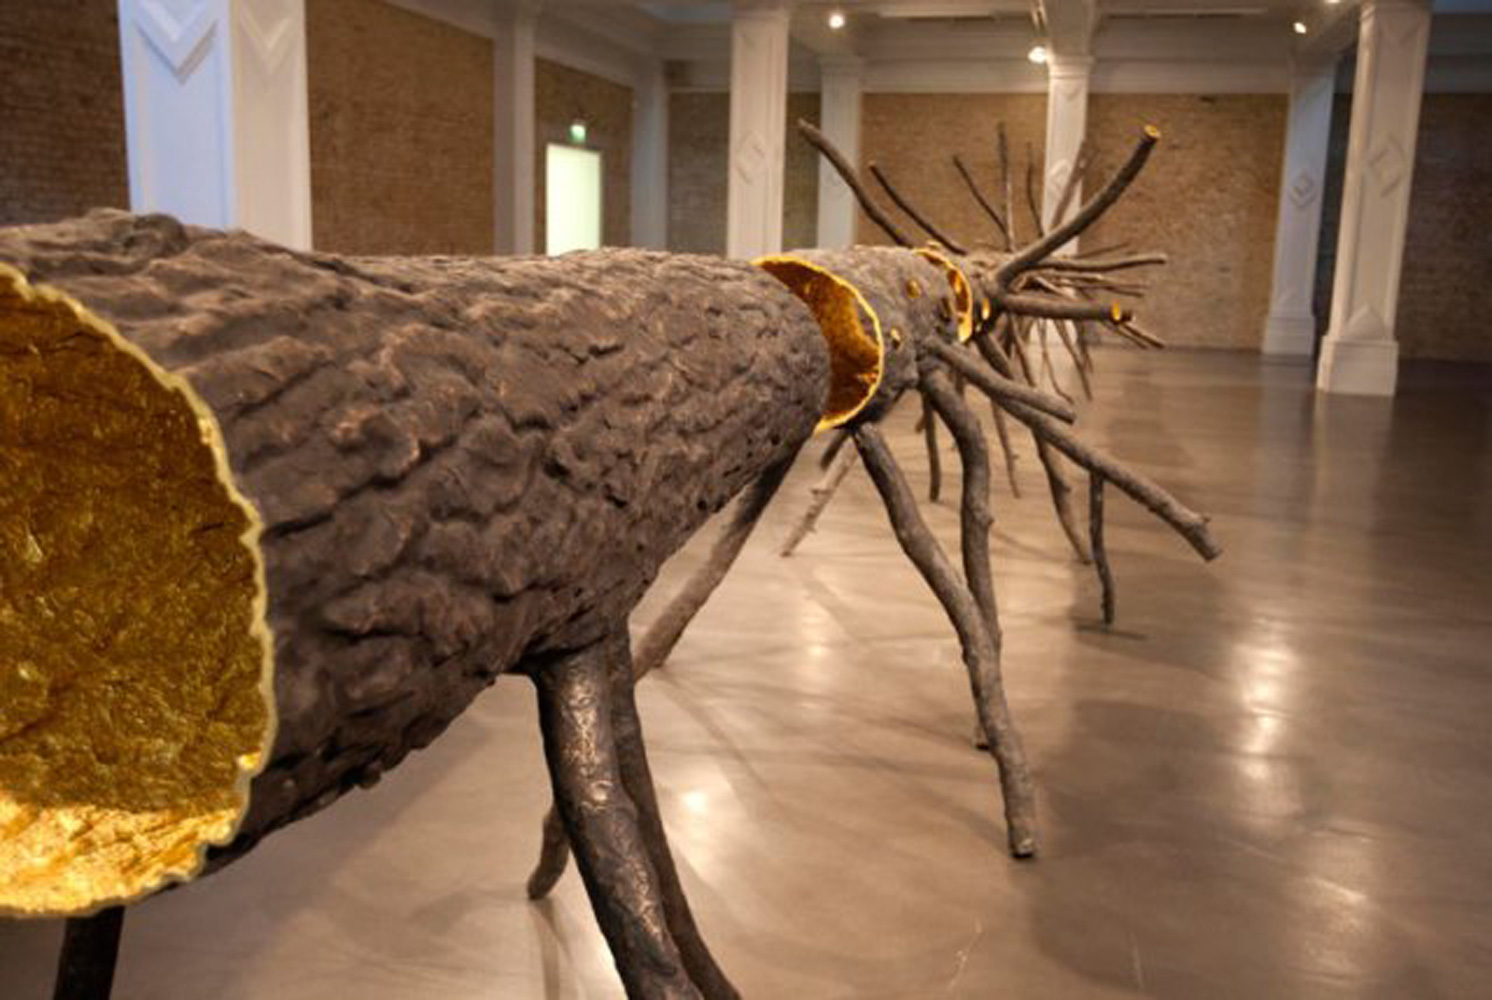 Giuseppe Penone, Space of Light at Whitechapel Gallery, 2012